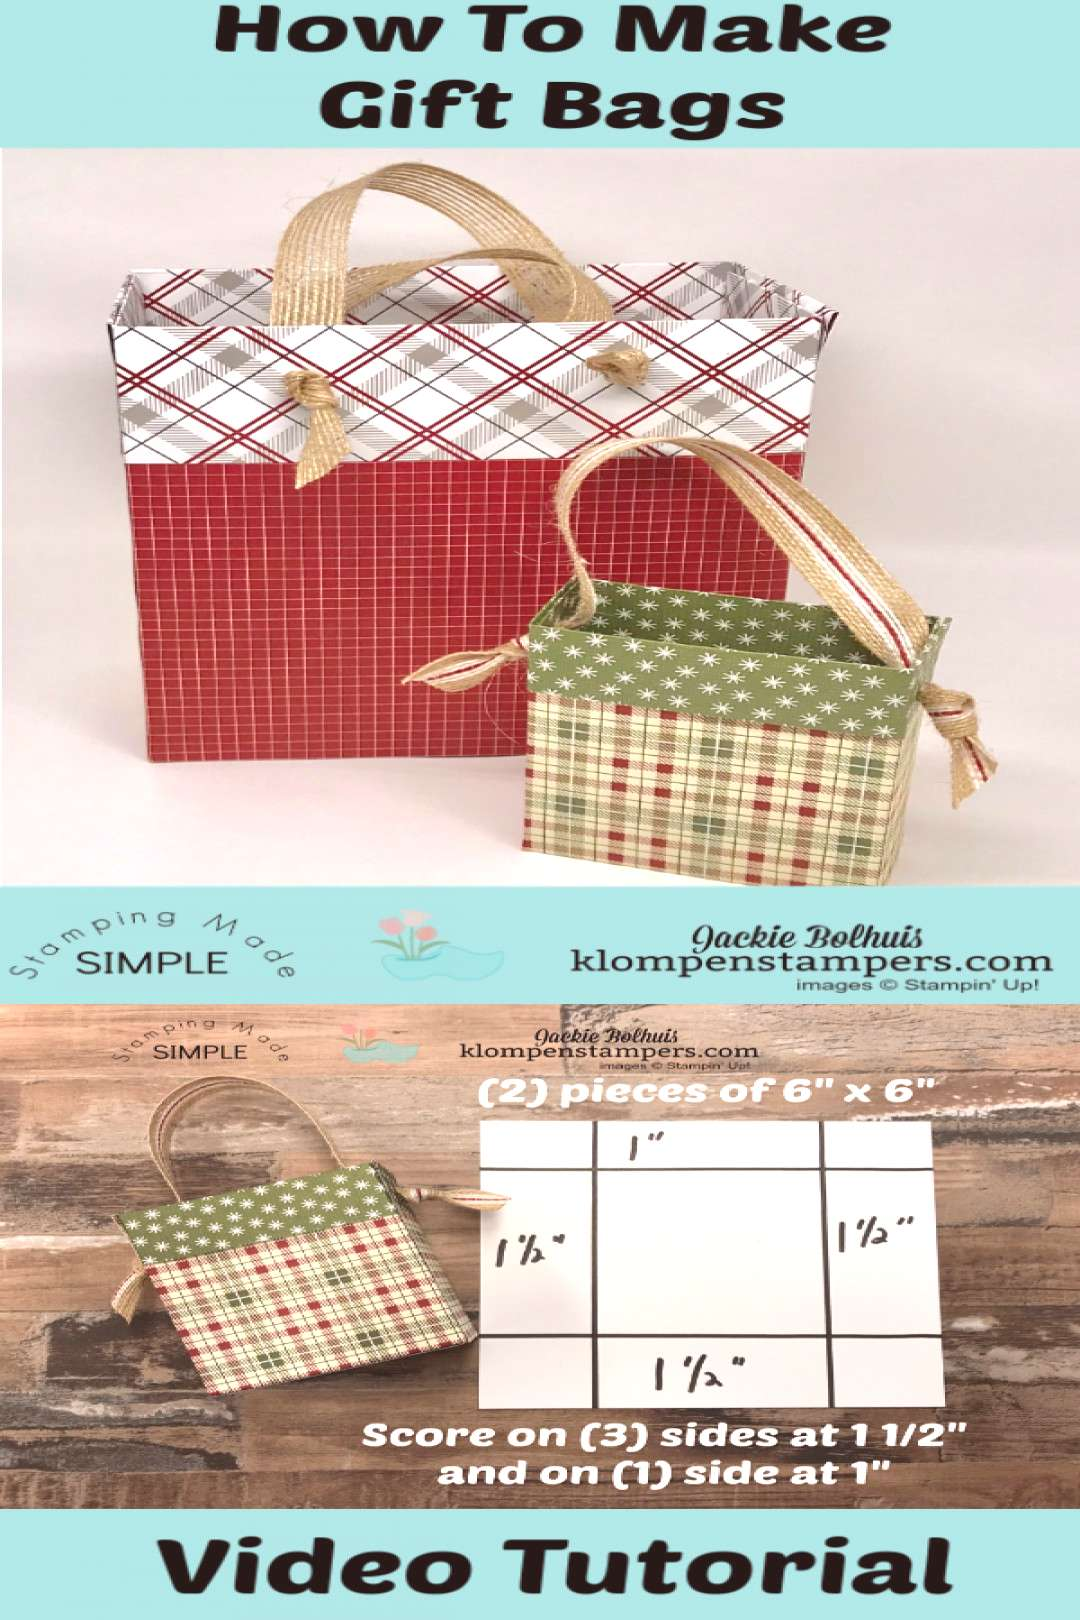 DIY Gift Bag From Scrapbook Paper VIDEO TUTORIAL Its easy to make ANY SIZE gift bag from Designe